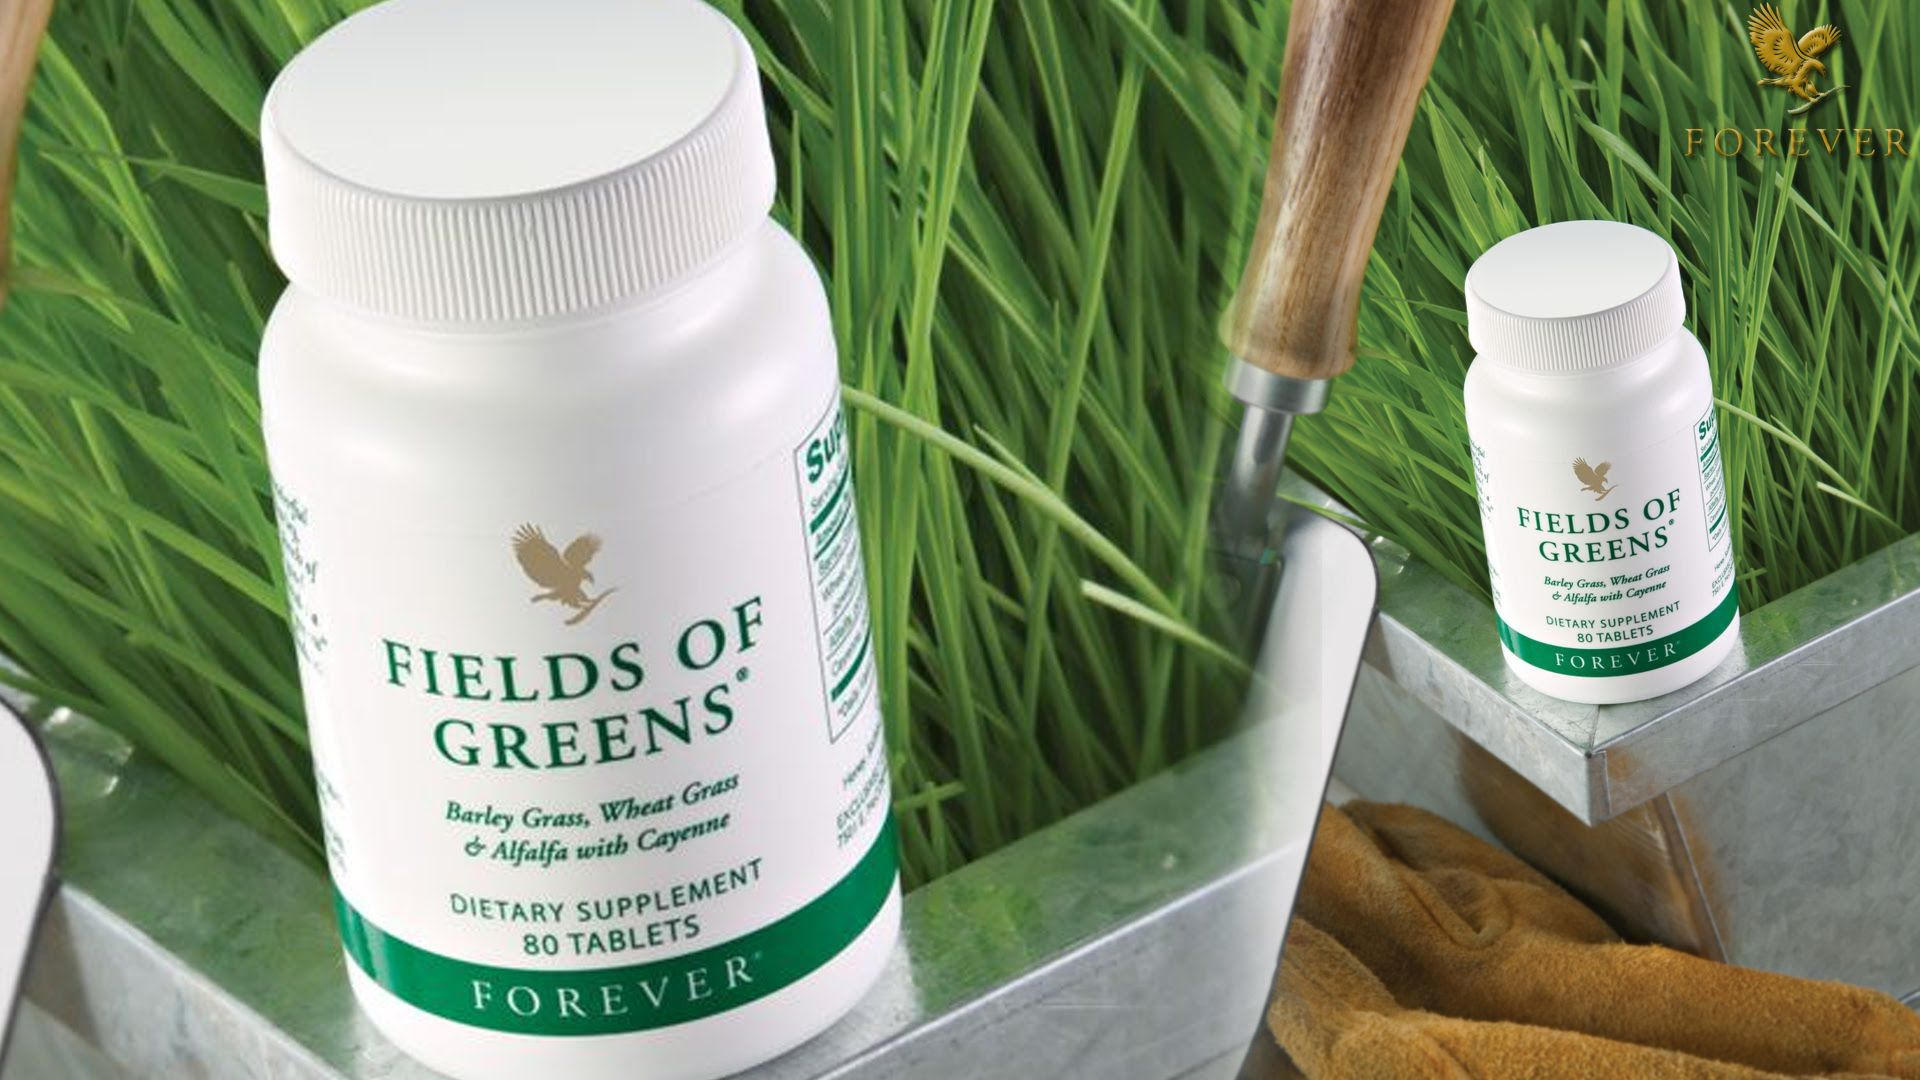 Forever fields of green 80 no s Vitamins Tablets Buy Forever fields